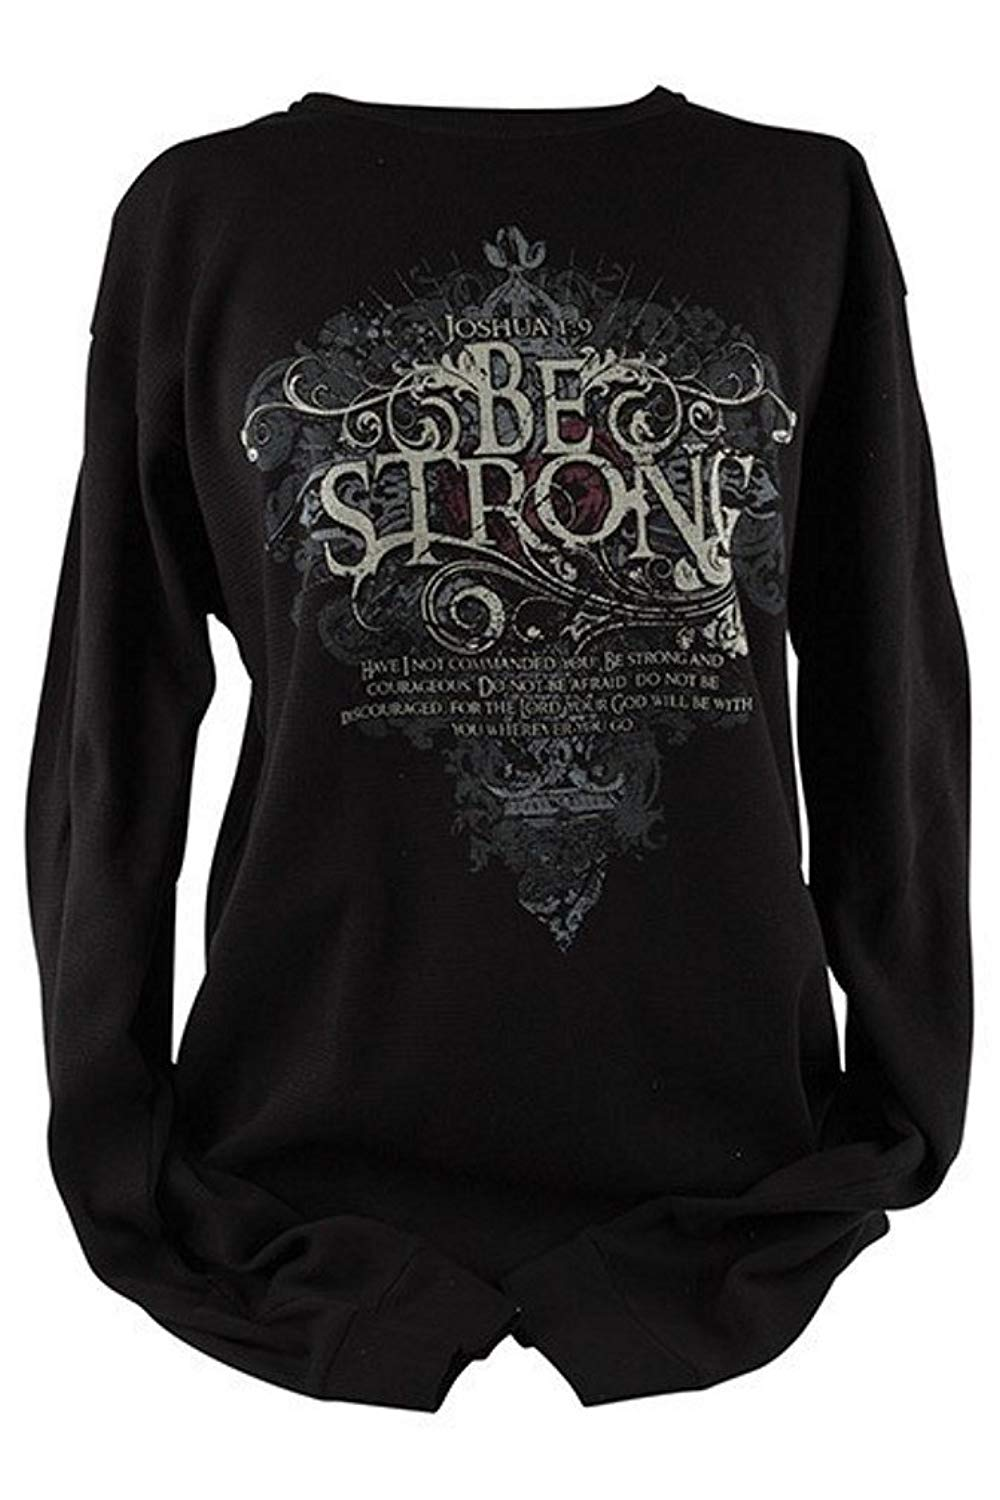 Kerusso ChristianBe Strong Long Sleeve Thermal, T-Shirt - Black